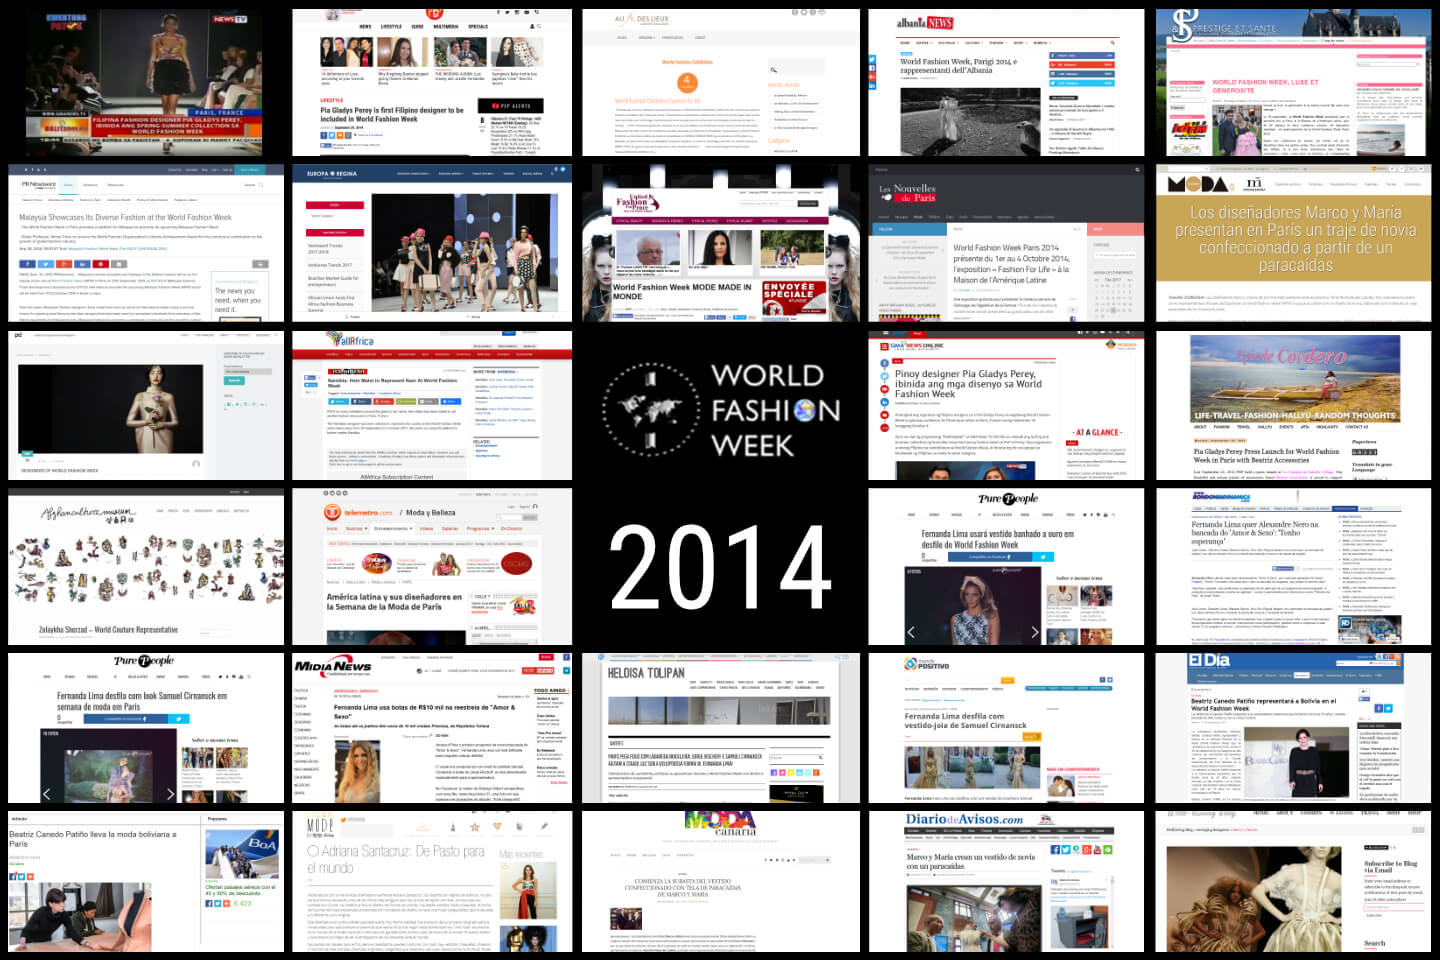 In 2014, World Fashion Week<sup>®</sup> Reach an advertising value of over $70 million worldwide